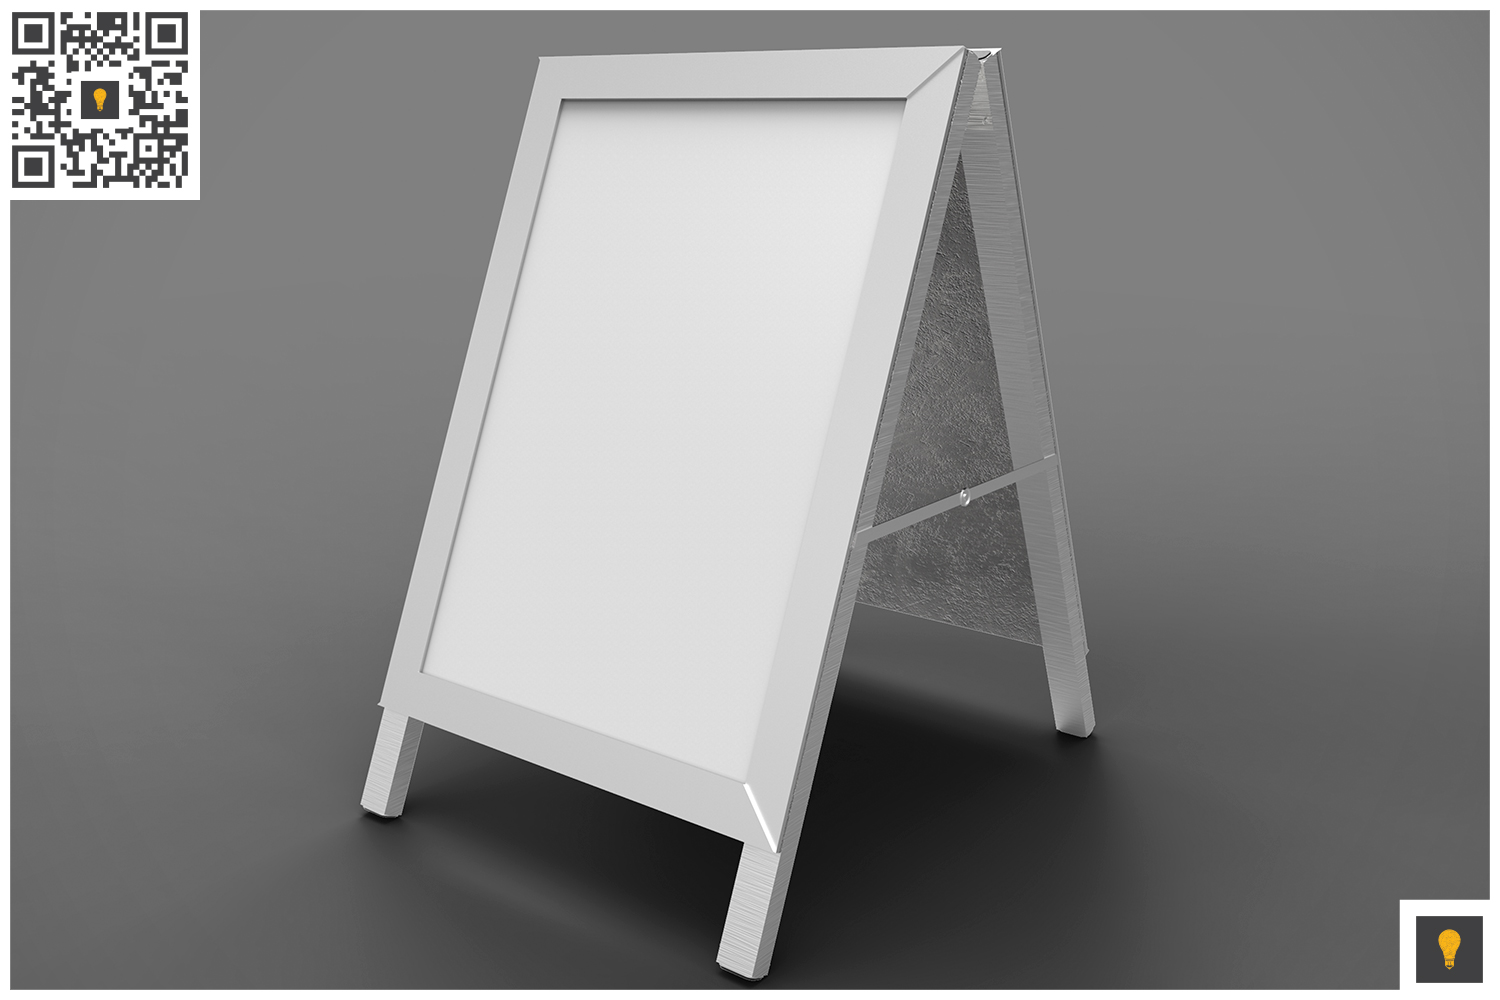 Poster Stand Display 3D Render example image 4